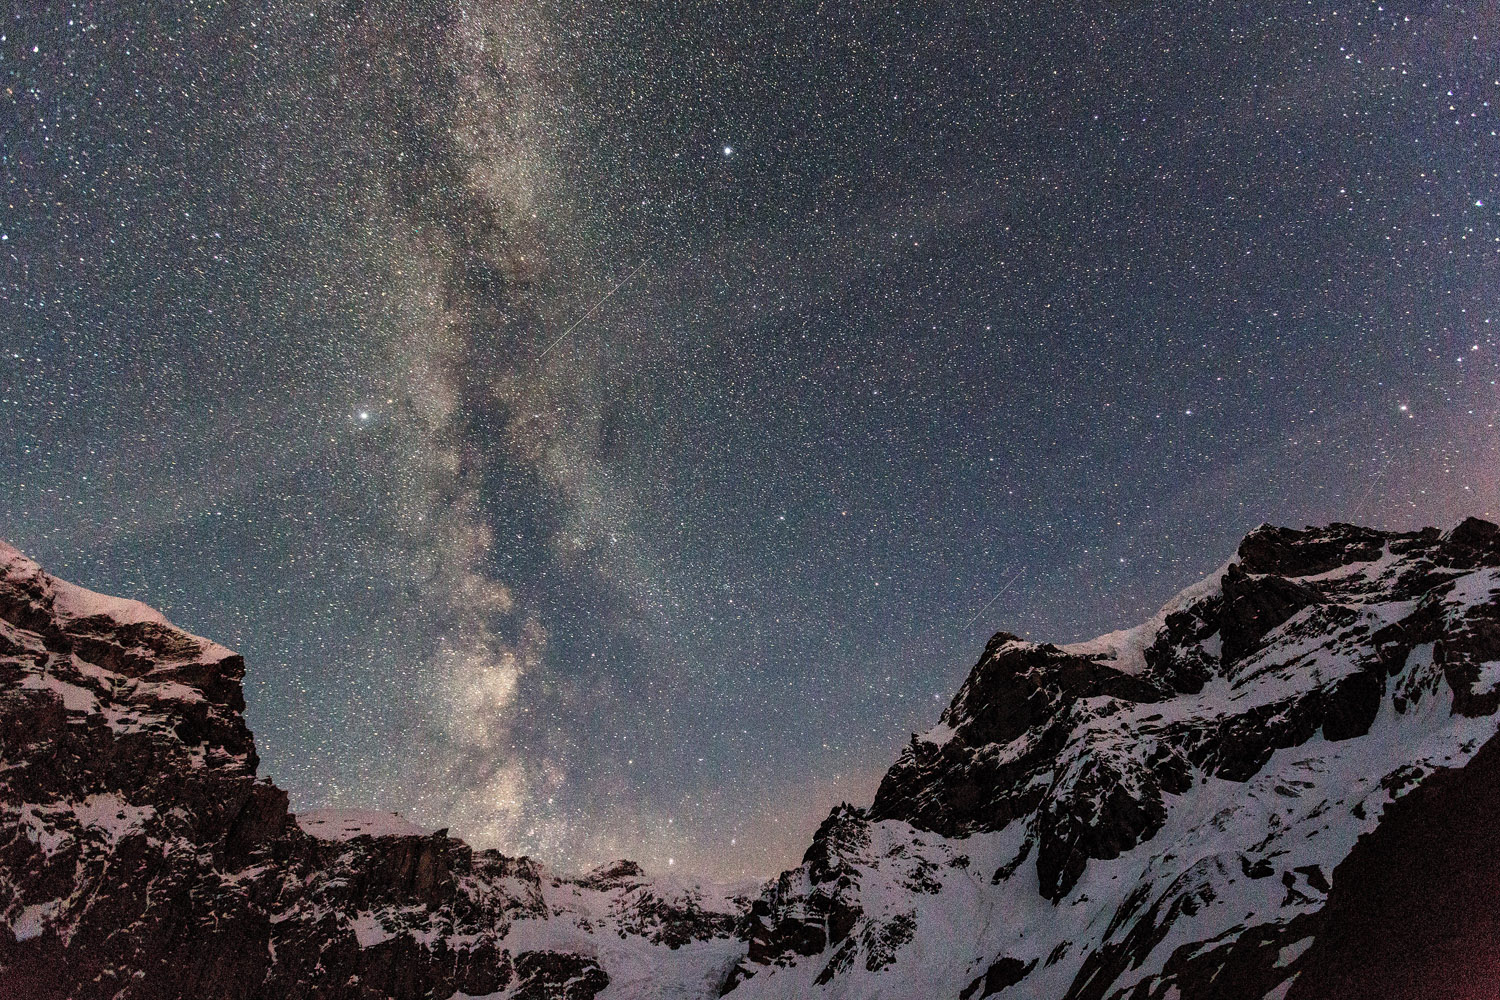 June 13, 2013. The Milky Way is seen between the Biferstock, the Piz Urlaun and the Toedi mountain above Linthal, Switzerland.